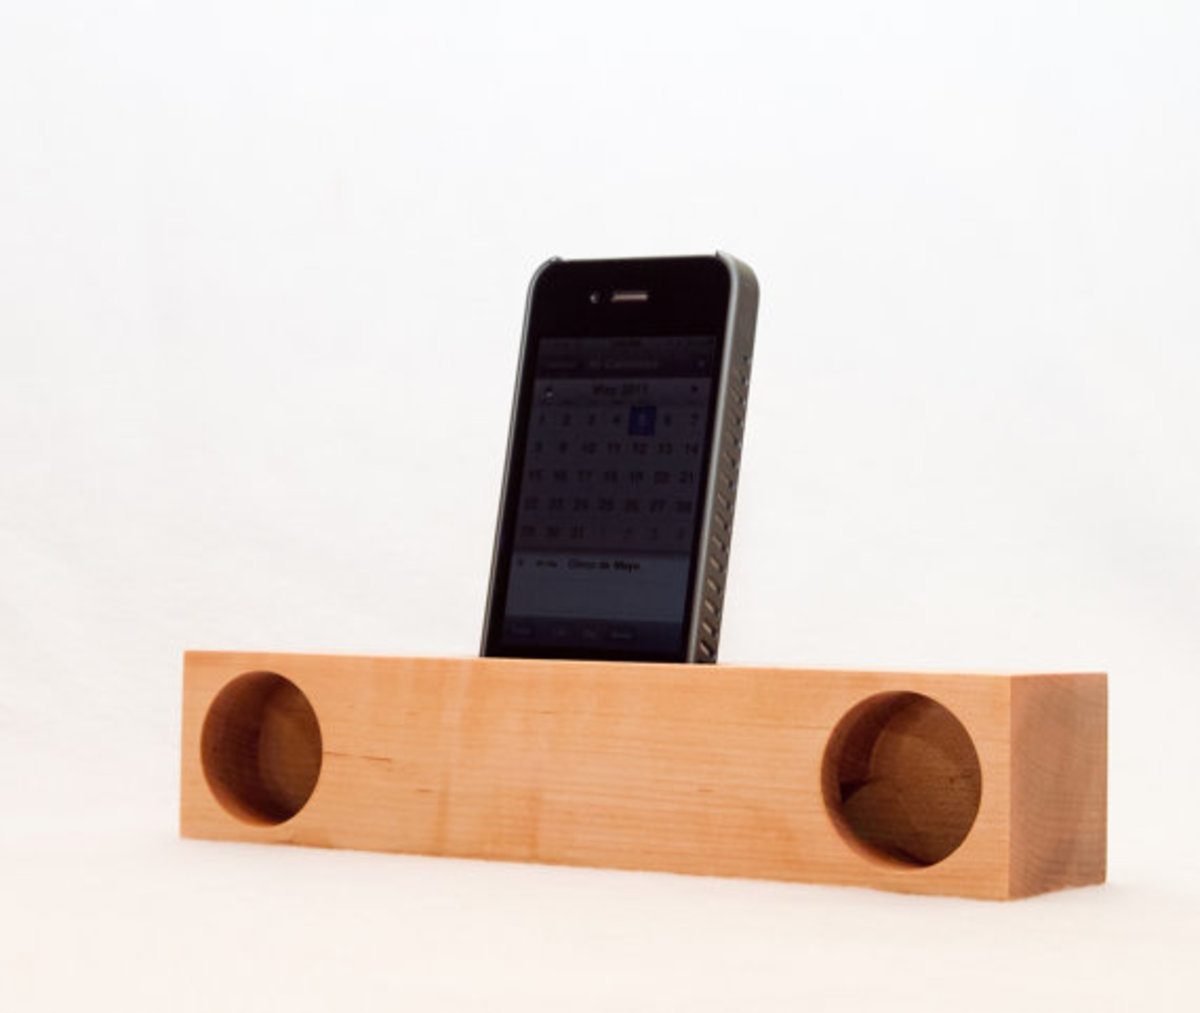 yellow-glue-blues-iphone-acoustic-dock-04